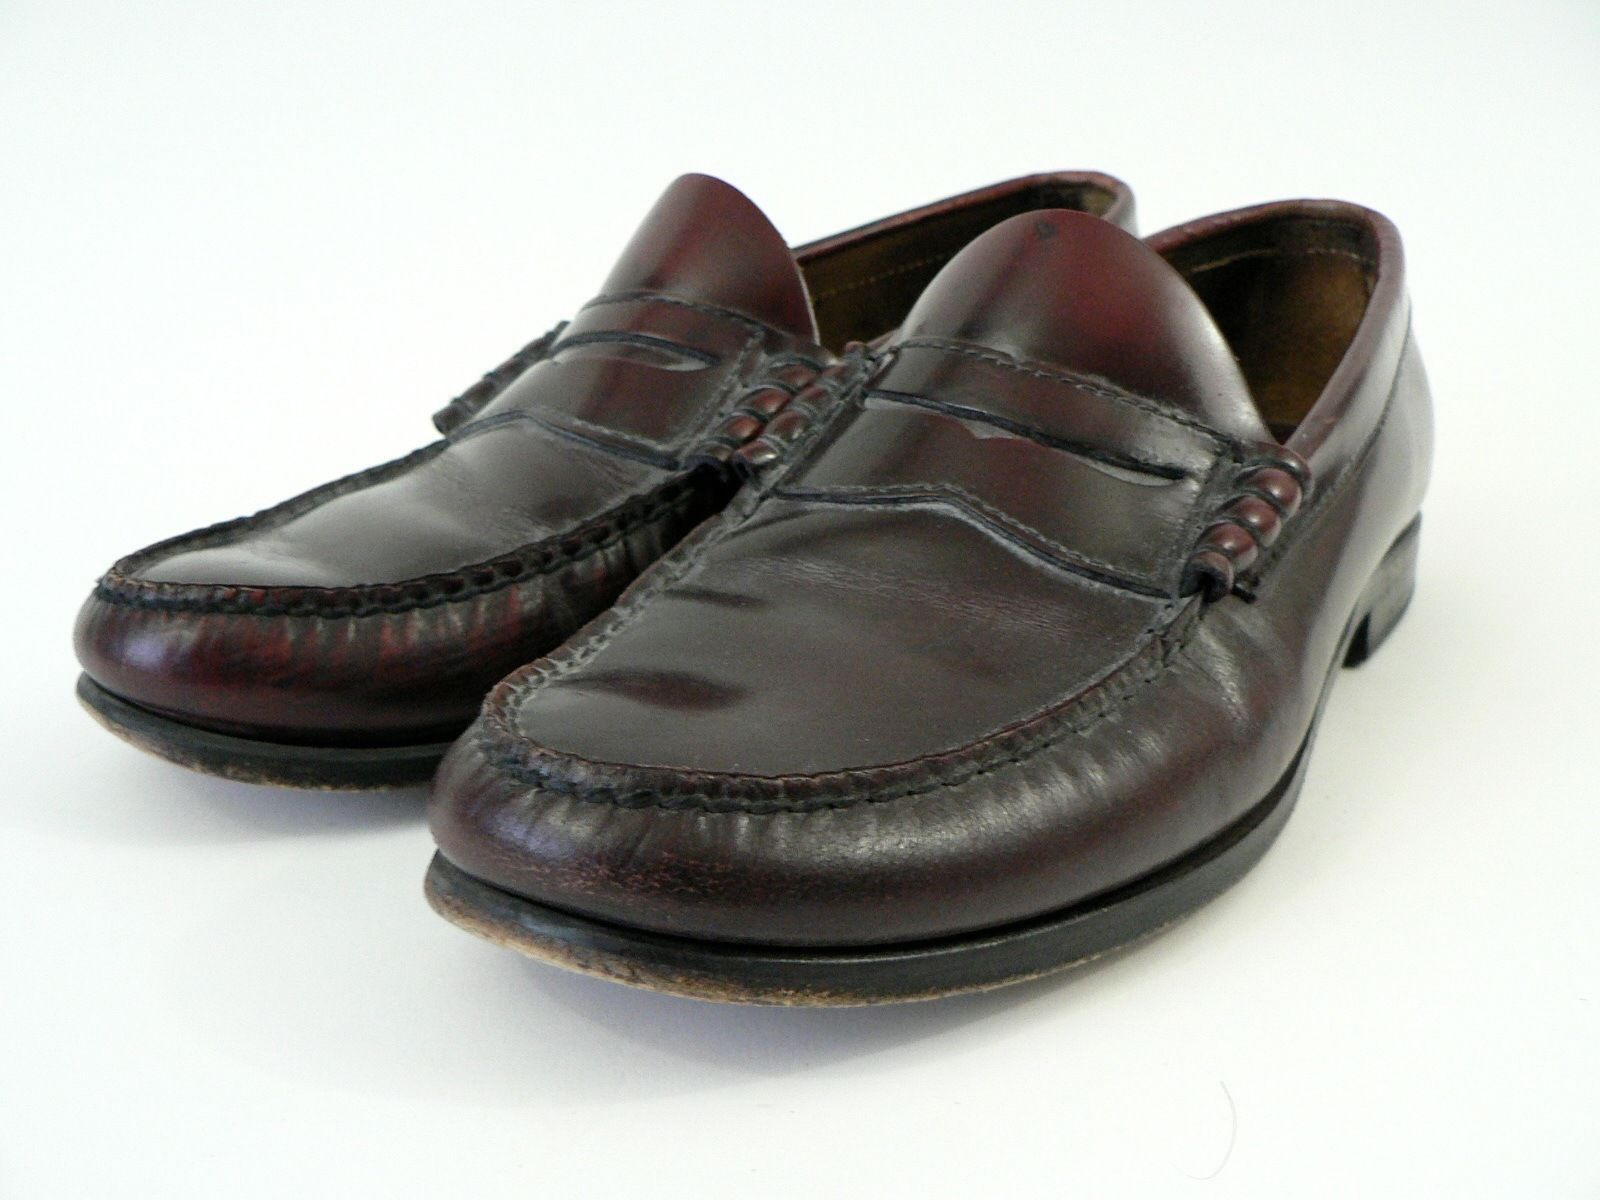 7033f2da32dc GH Bass   Co Weejuns Cordovan Leather Penny and 50 similar items